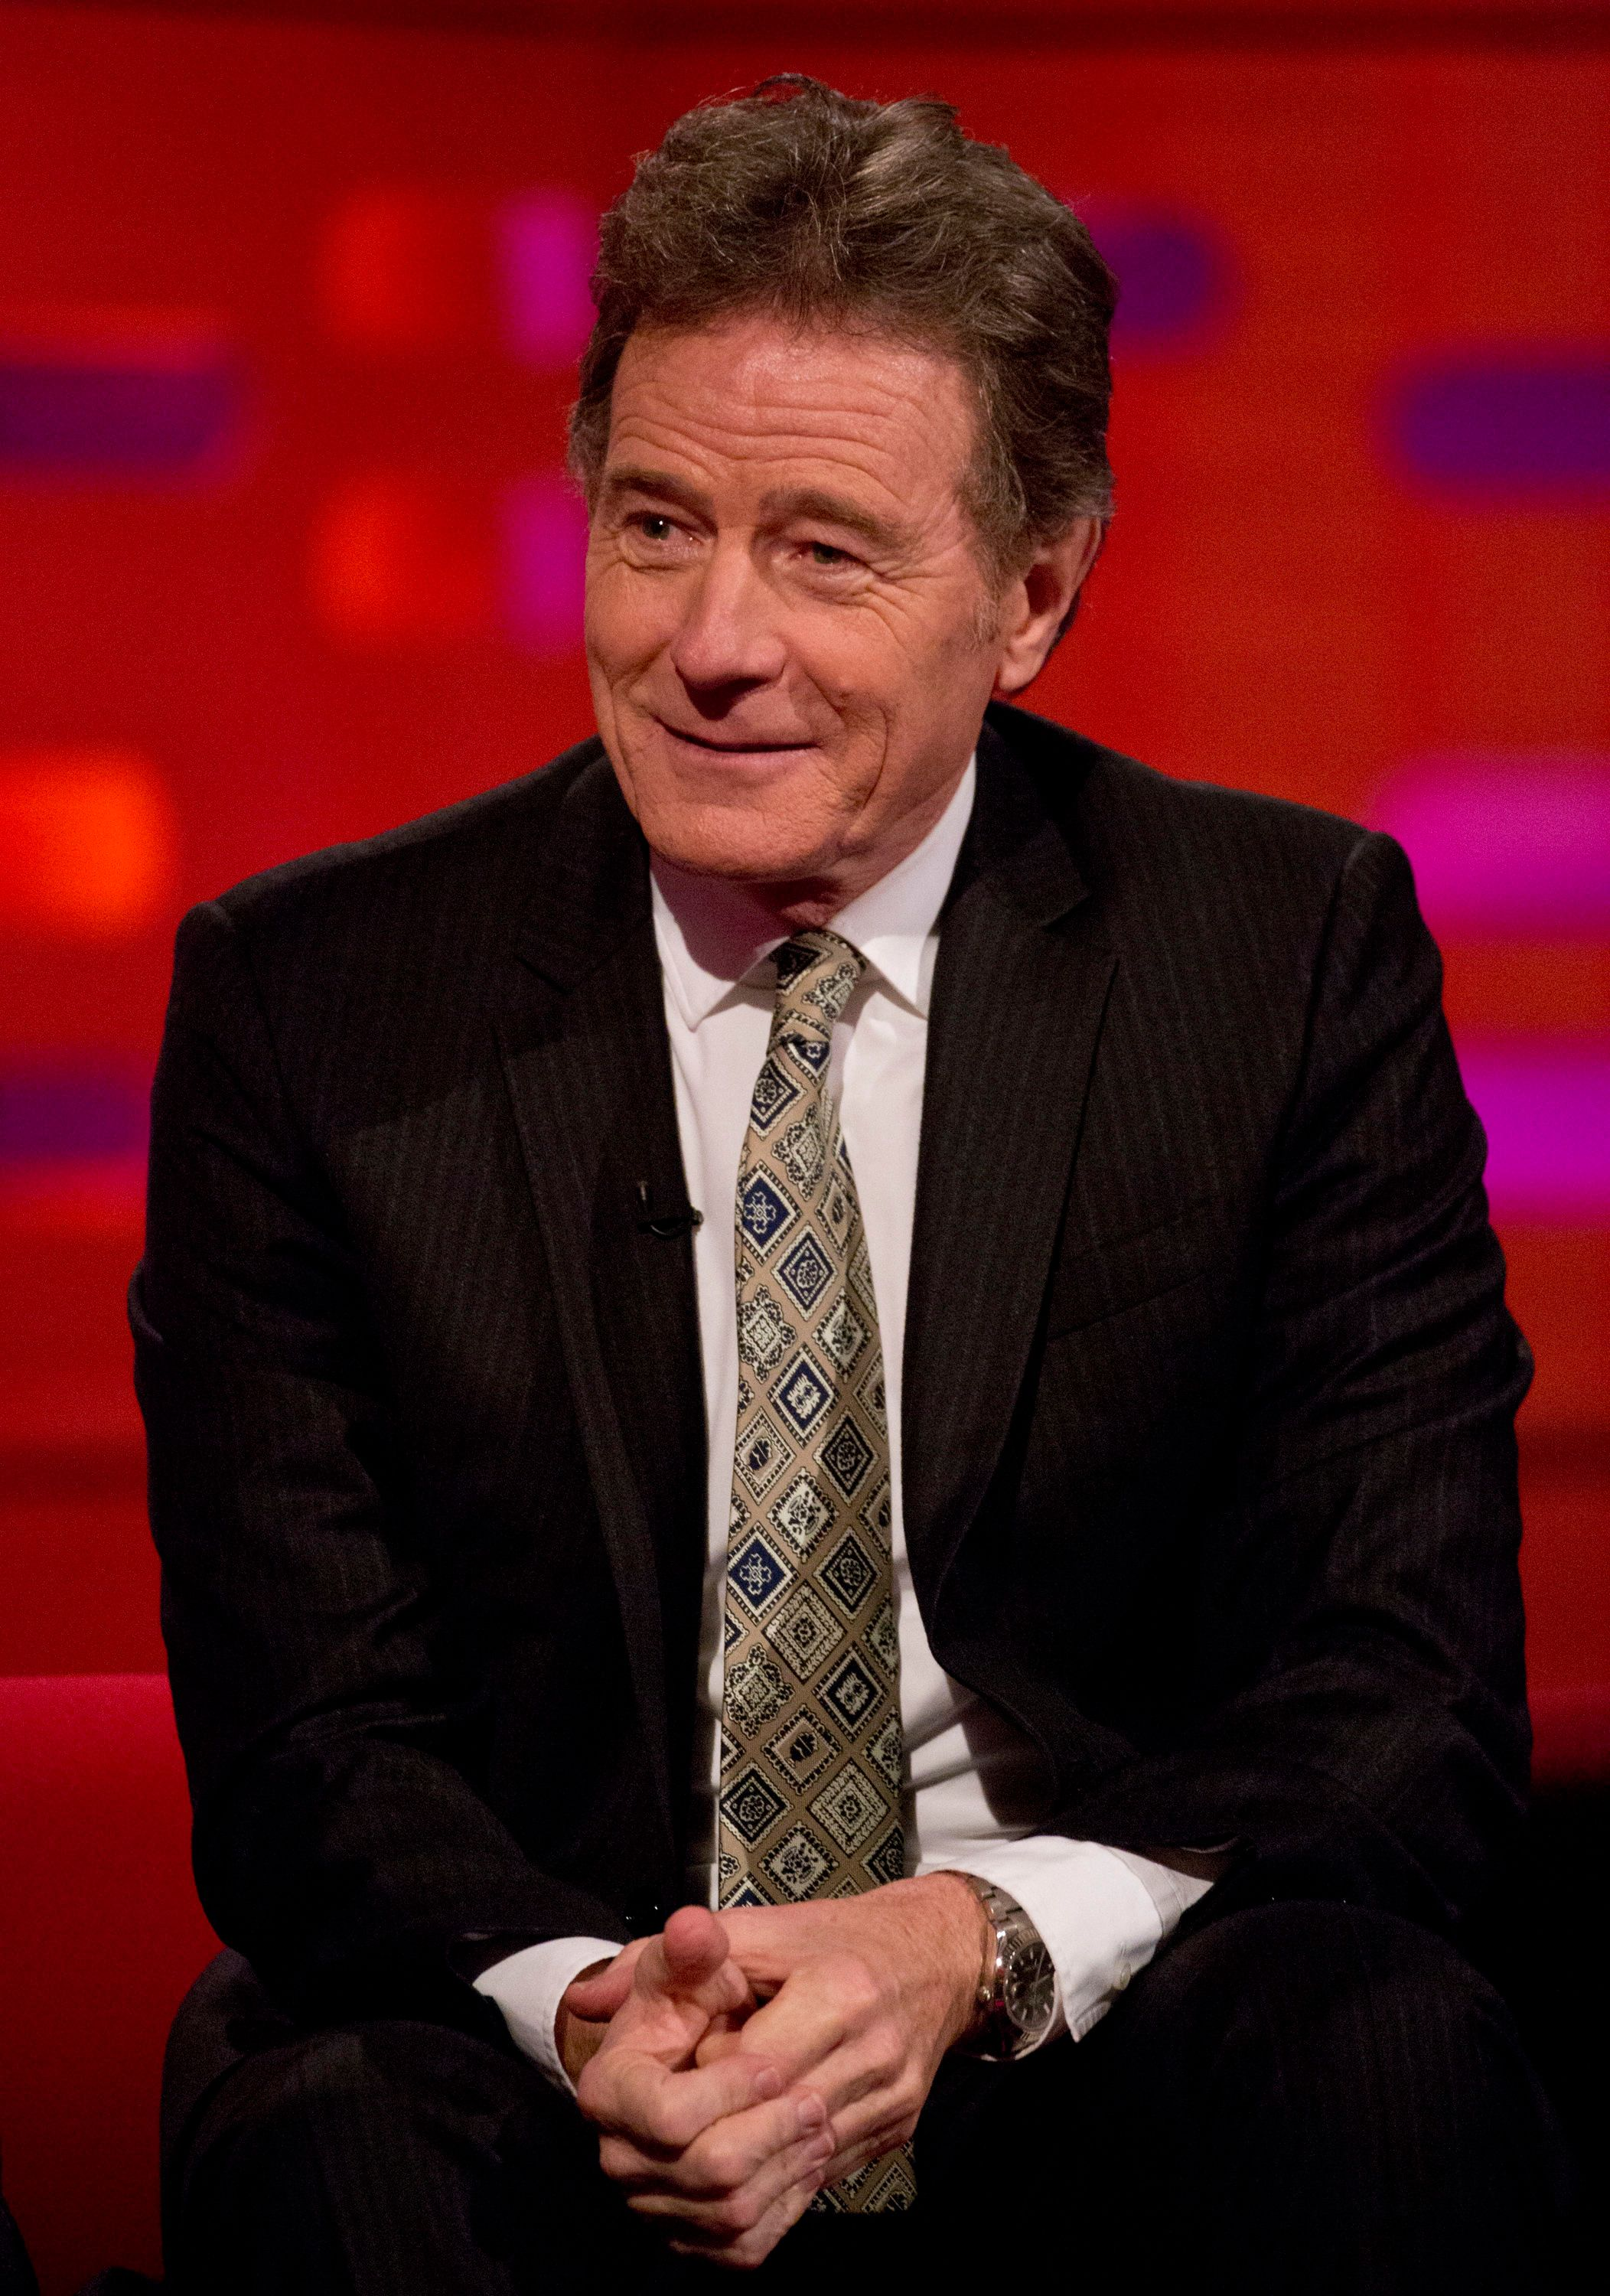 Bryan Cranston Tells Graham Norton About The Time He Got Caught Having Sex In A Tunnel In The